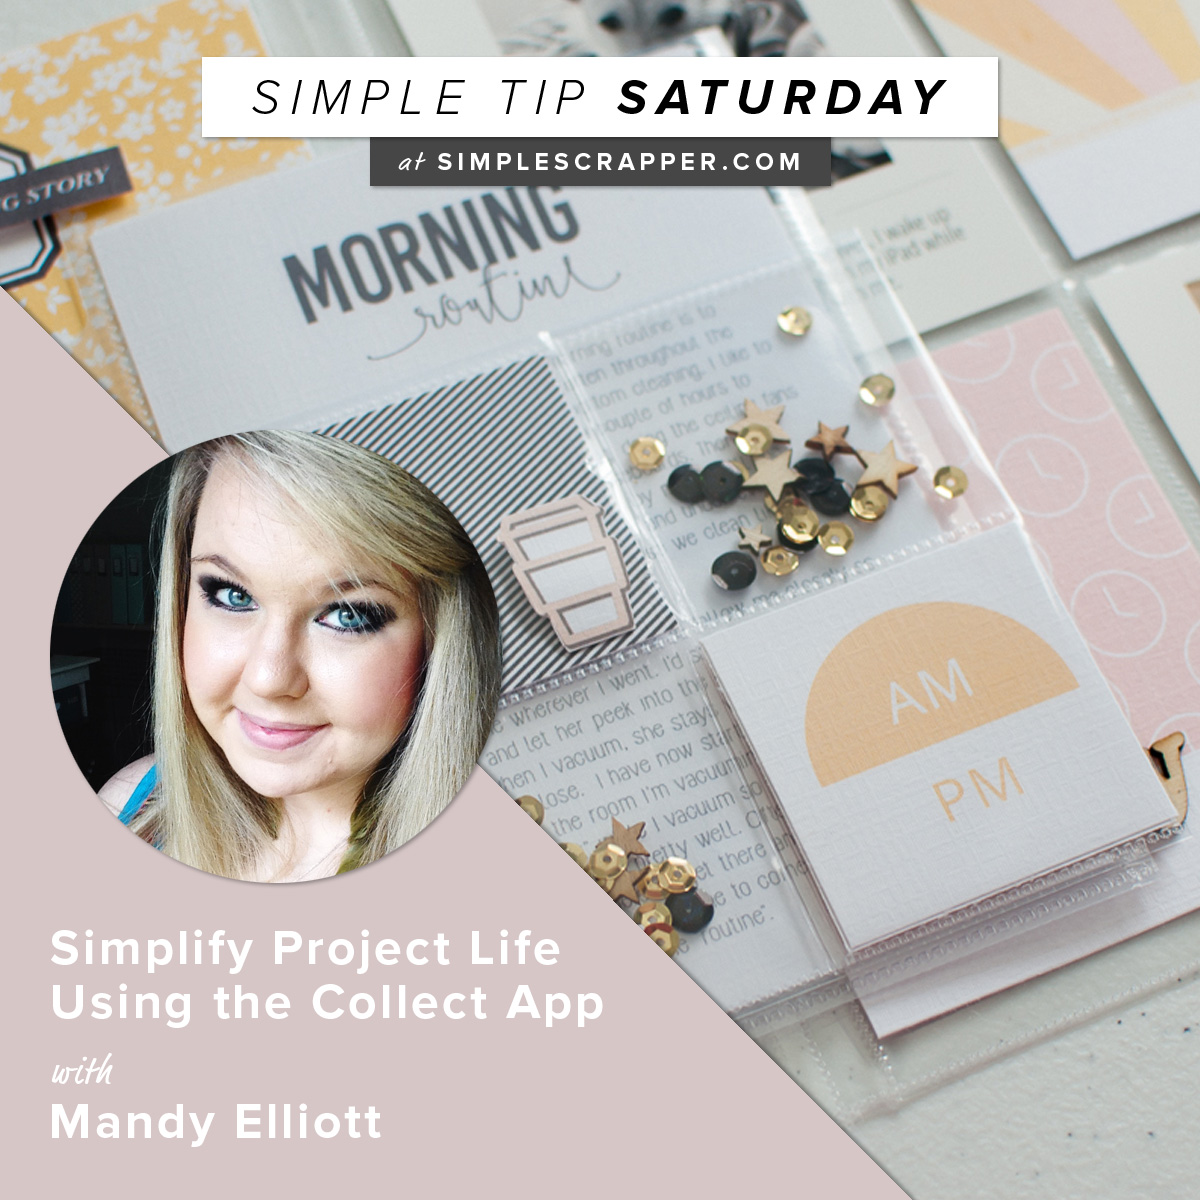 Simplify Project Life Using the Collect App with Mandy Elliott